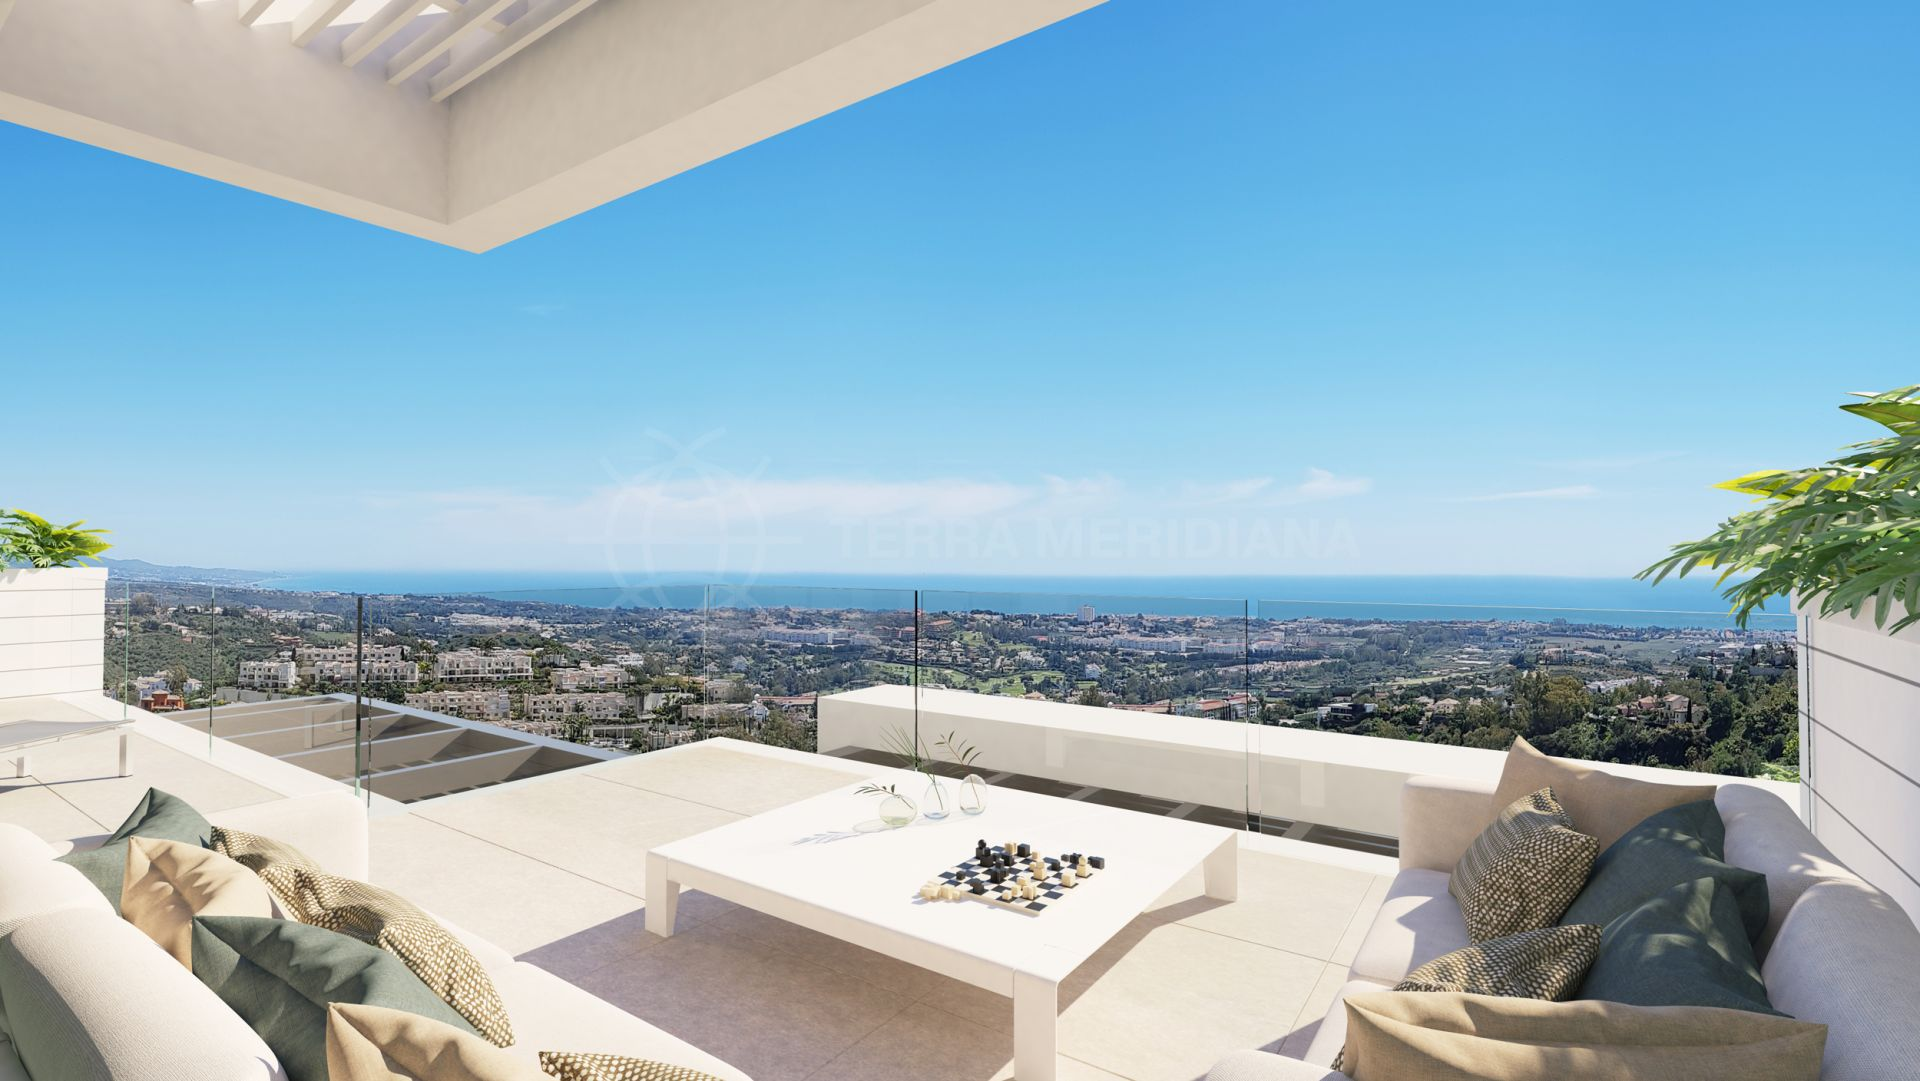 Off plan penthouse with rooftop solarium and private plunge pool for